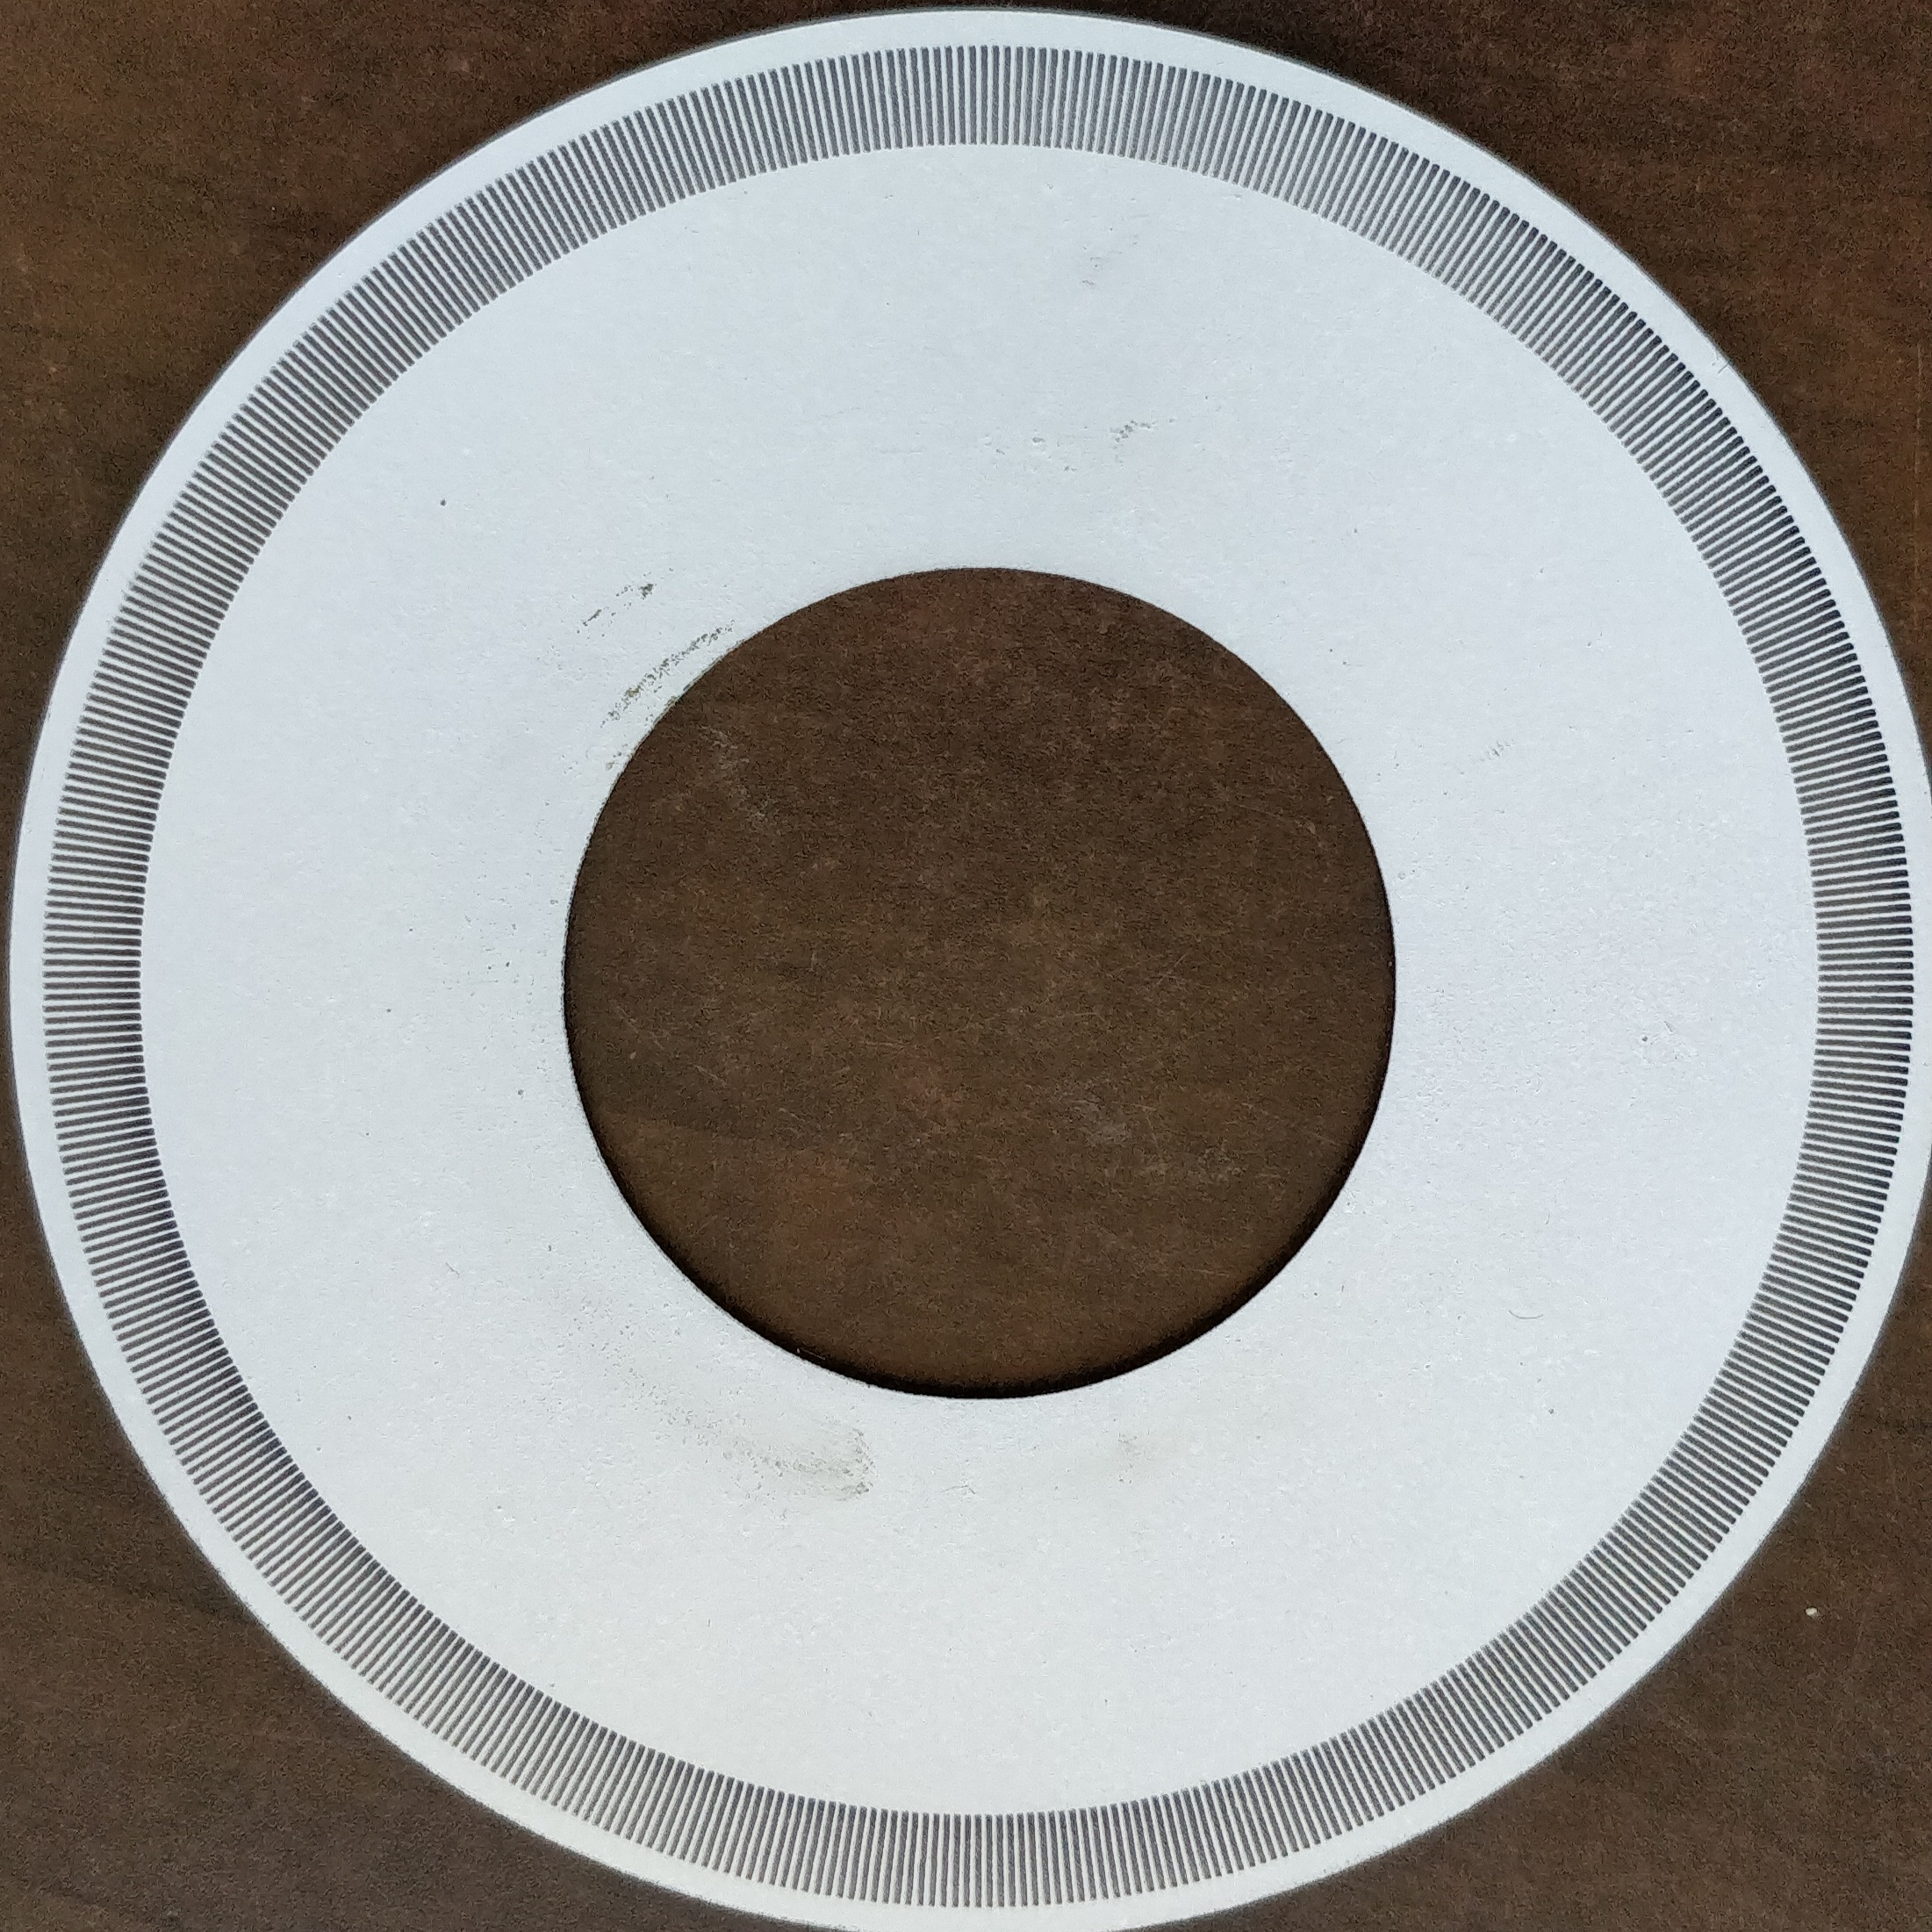 Encoder Disk #1: Acrylic painted white and laser etched